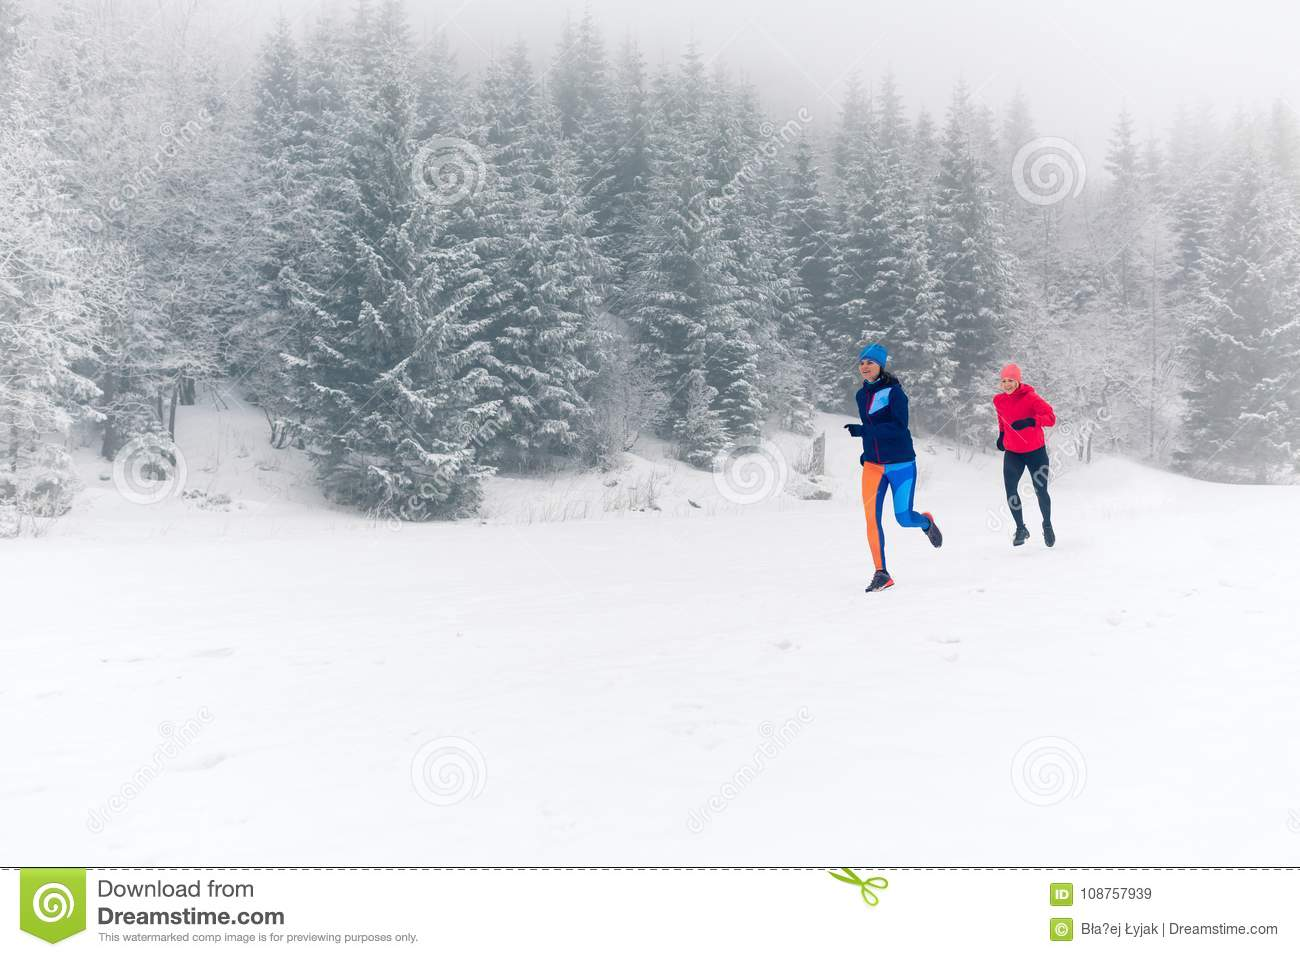 Two Women Trail Running On Snow In Winter Mountains Stock Image - Image of  partners, clothes: 108757939